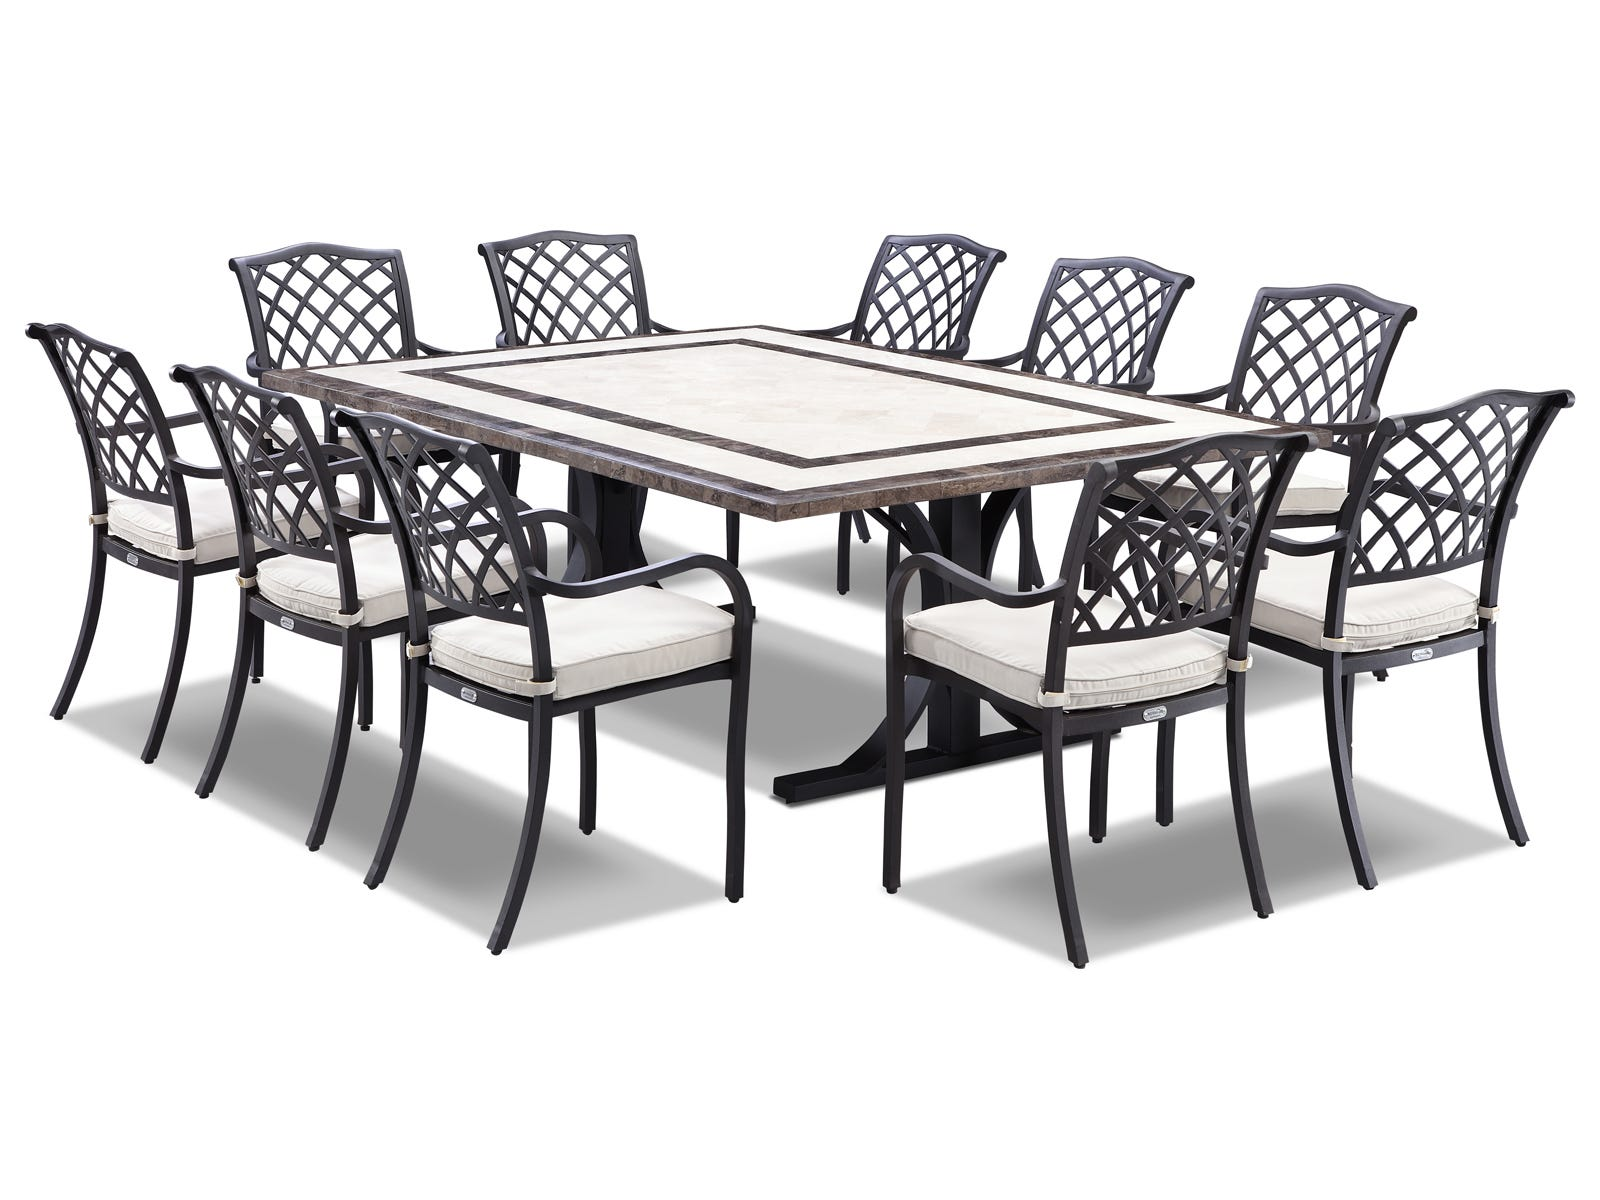 Natural Stone Outdoor Tables